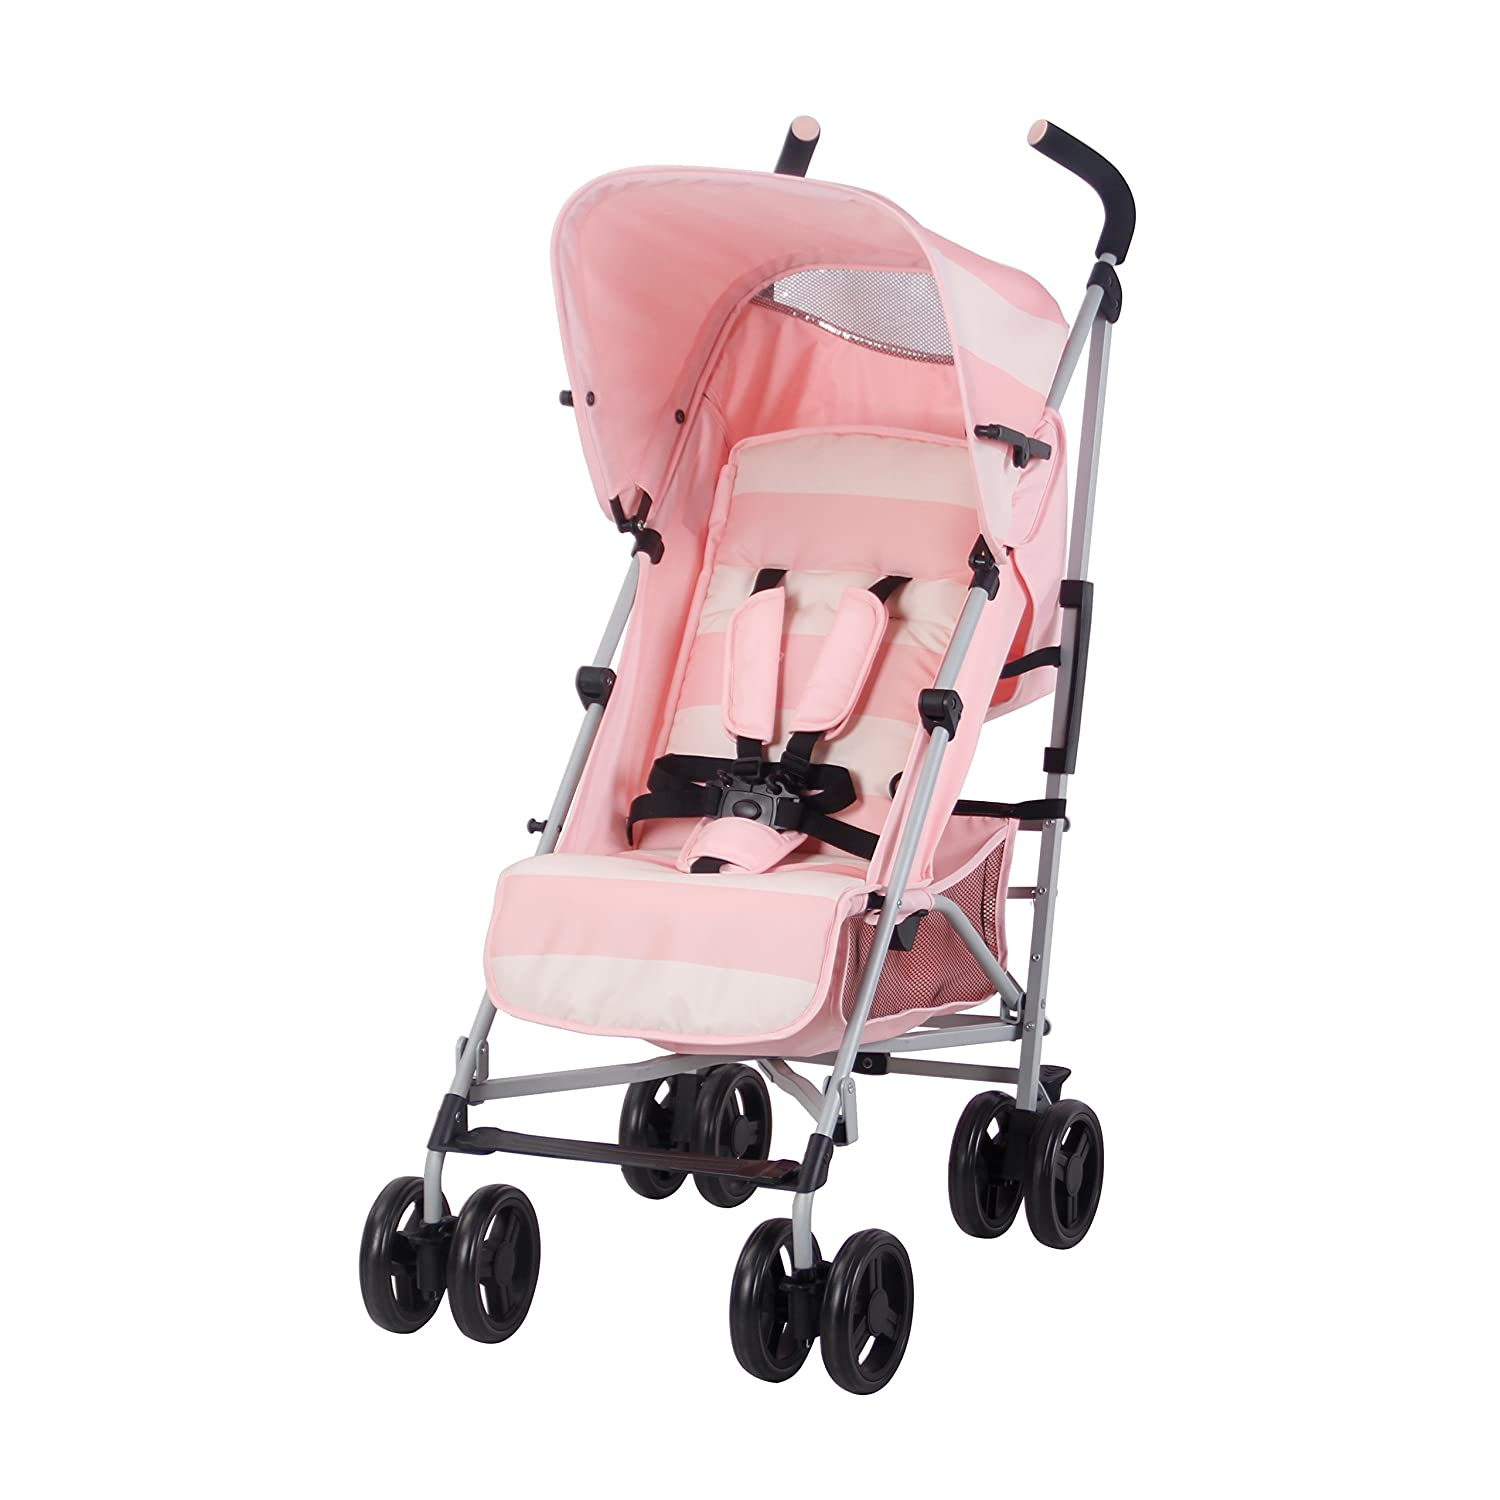 My Babiie US01 Pink Stripes Baby Stroller Lightweight Travel Stroller Lightweight Baby Stroller with Carry Handle Suitable from Birth to 33 lbs Silver Frame and Pink Stripes